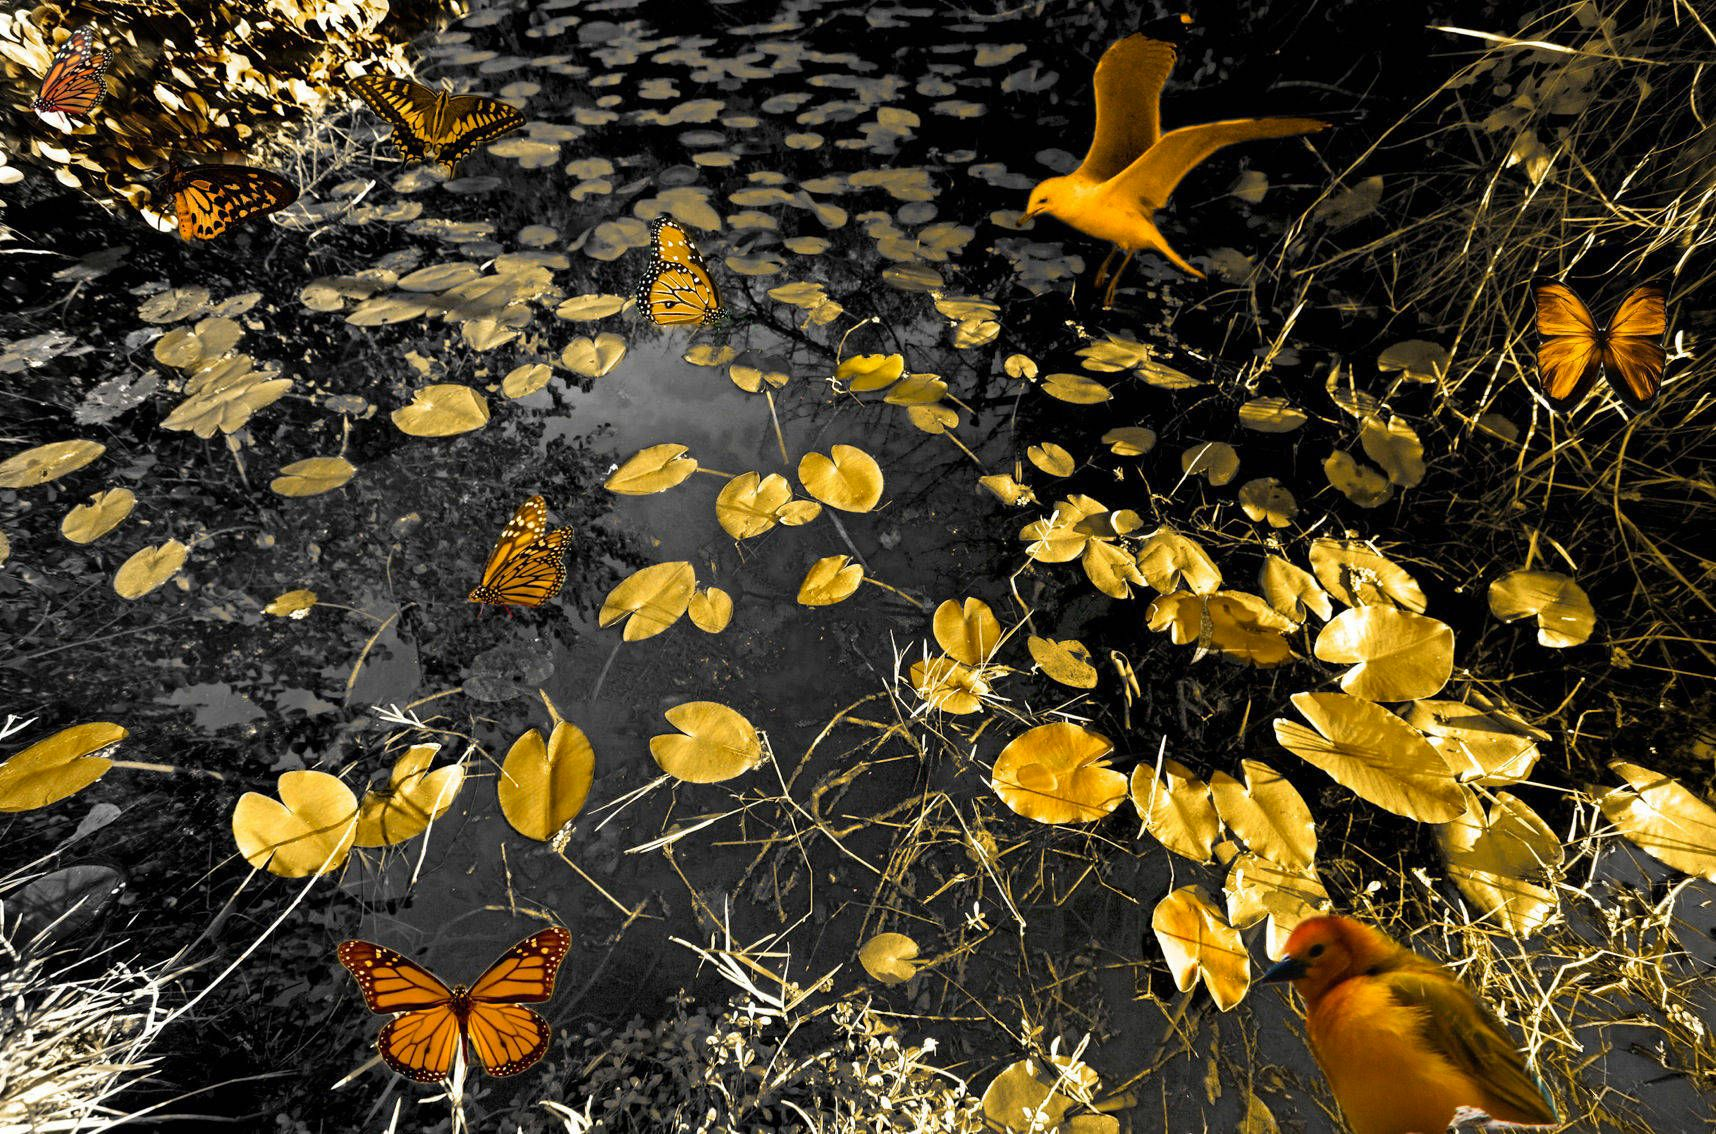 Golden Marsh with Butterflies